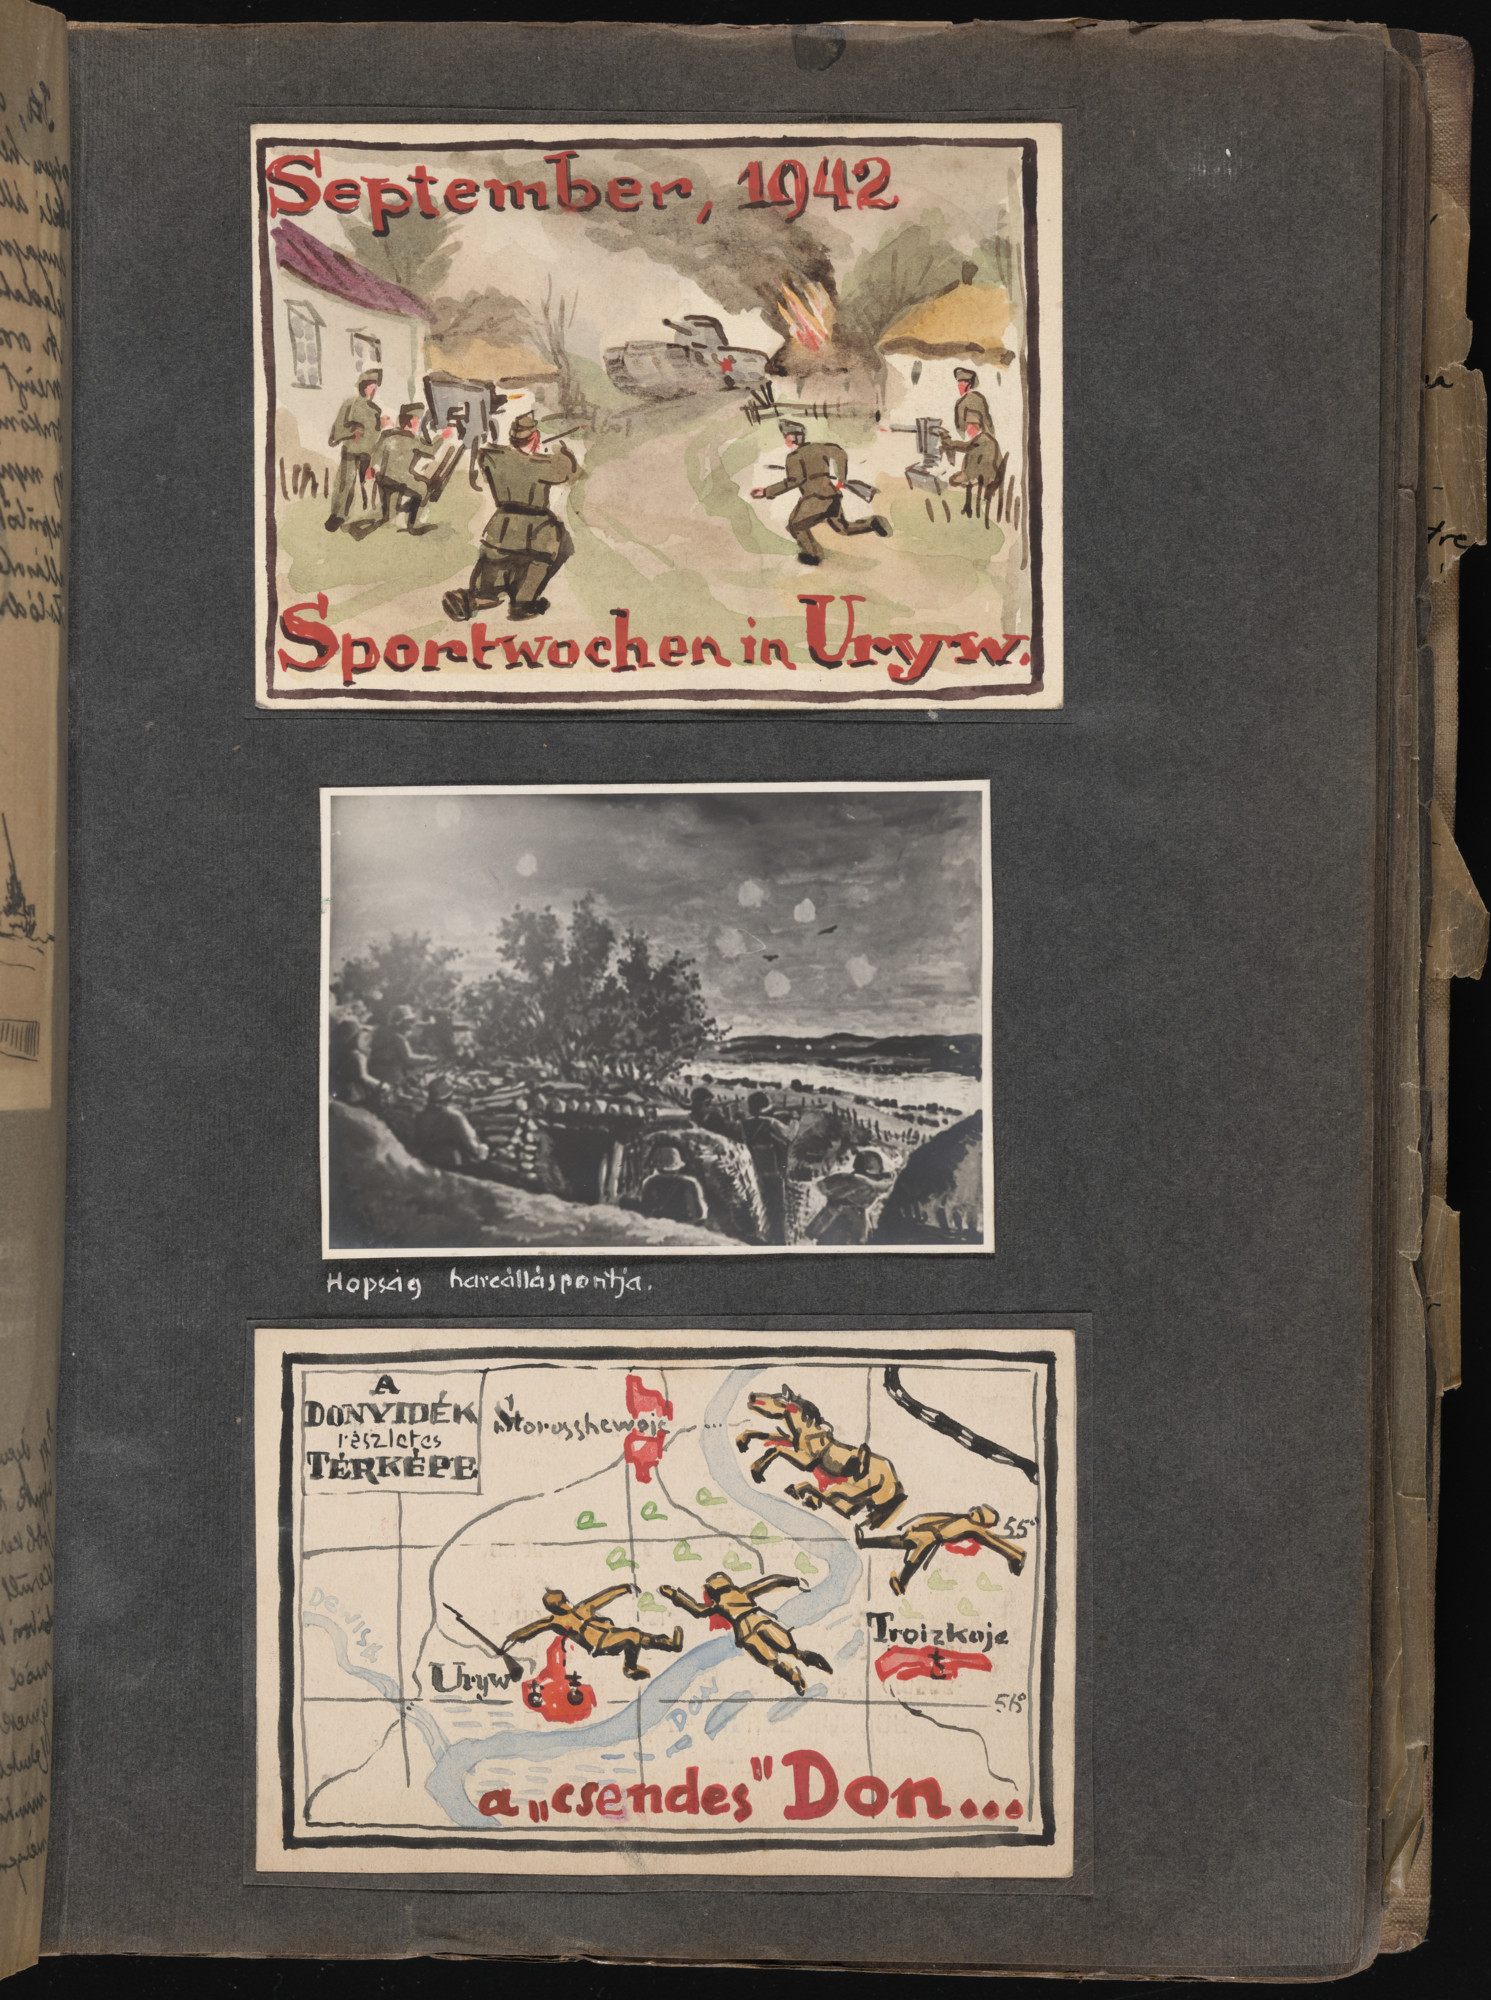 Watercolor entitled 'Sports weeks in Uryv, September 1942,' in which a Russian tank attacks a Hungarian unit in Uryv (top); watercolor entitled 'Quiet Don: a detailed map of the Don River area,' featuring images of dead soldiers, horses and spilled blood on a map of the Don River (bottom).  One page of an illustrated album produced by Gyorgy Beifeld (1902-1982), a Hungarian Jew from Budapest, who was drafted into the Munkaszolgalat (Hungarian Labor Service system) and spent more than a year on the Soviet front, from April 1942 through May 1943.  The album contains 402 drawings and watercolors by Byfield, as well as a narrative of his experiences.